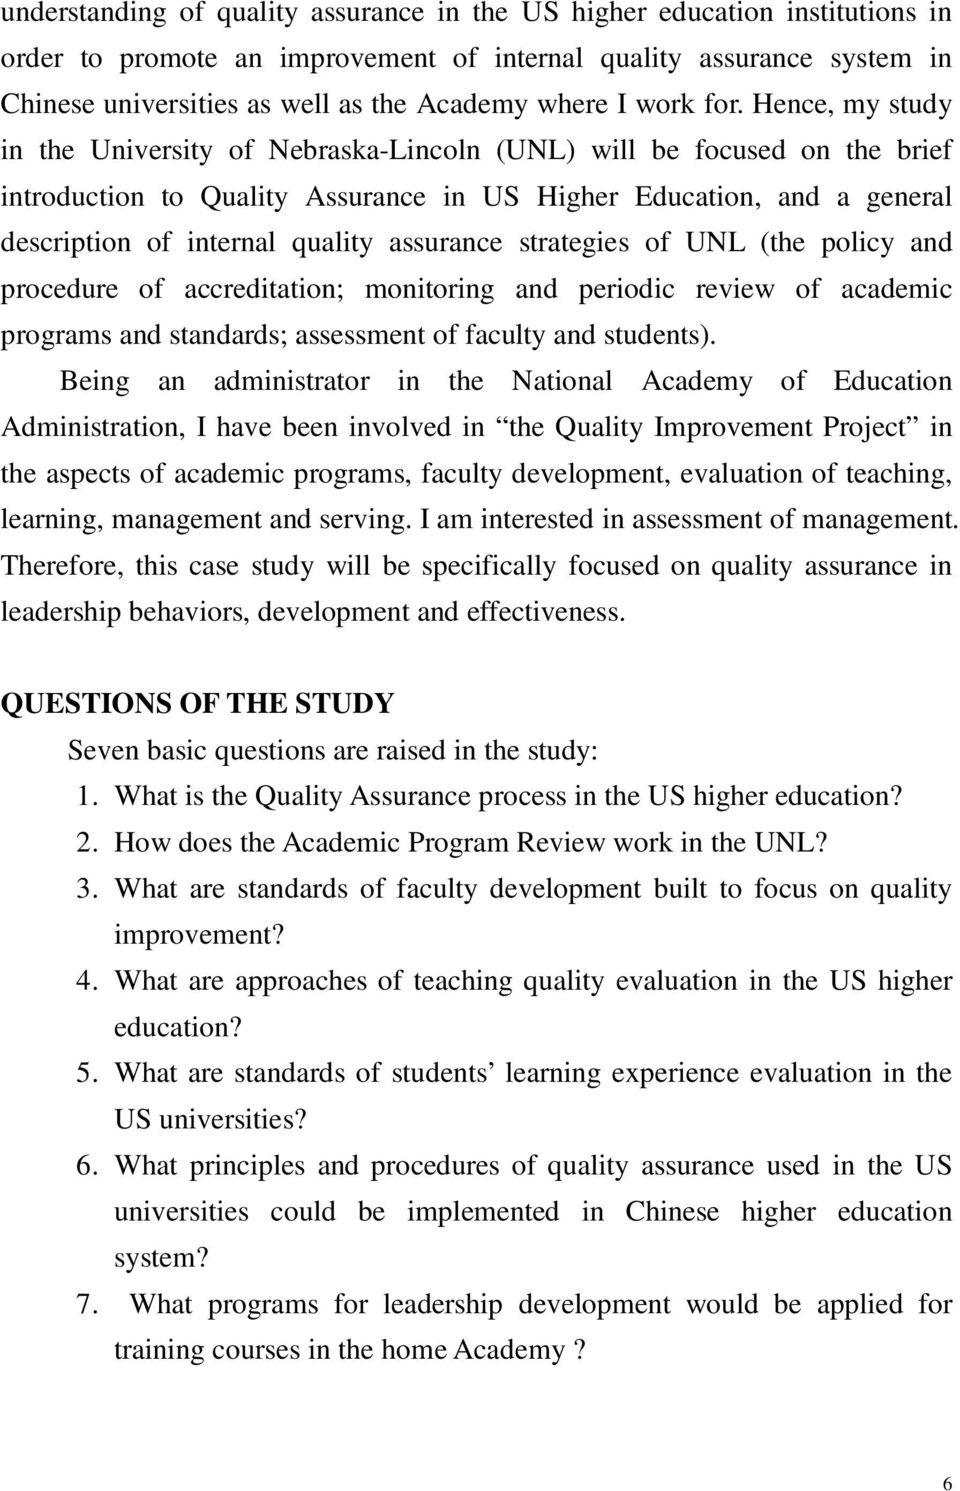 Hence, my study in the University of Nebraska-Lincoln (UNL) will be focused on the brief introduction to Quality Assurance in US Higher Education, and a general description of internal quality